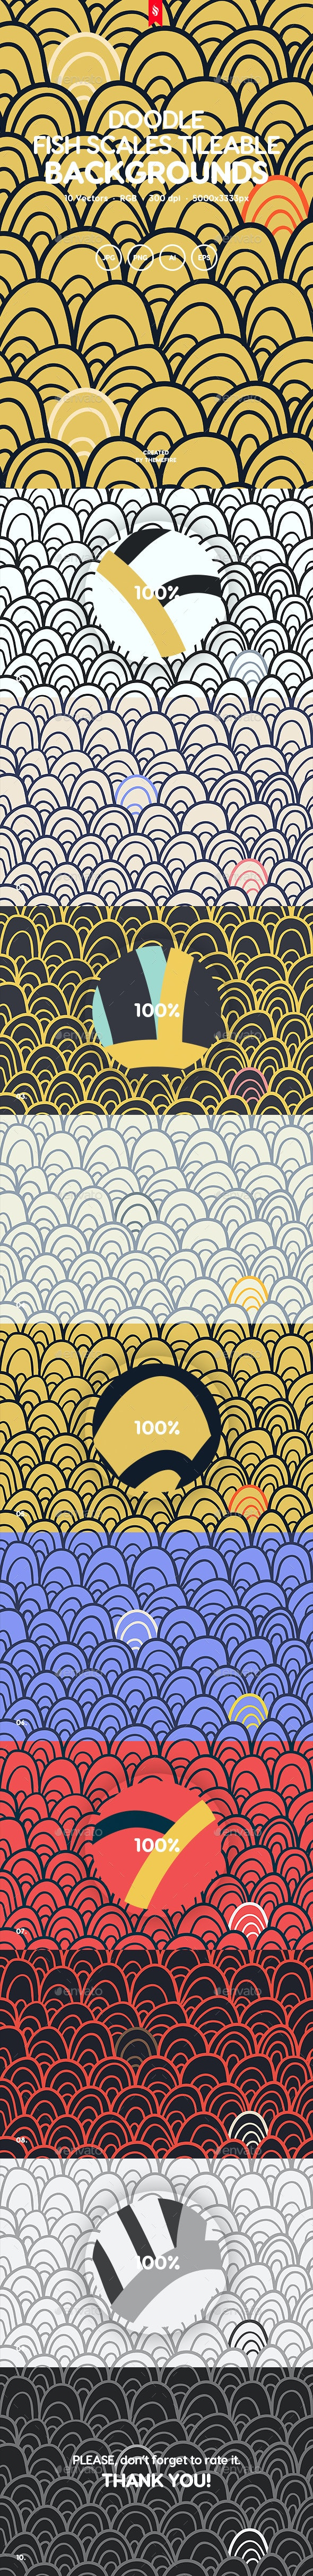 Hand Drawn Doodle Seamless Patterns - Patterns Backgrounds